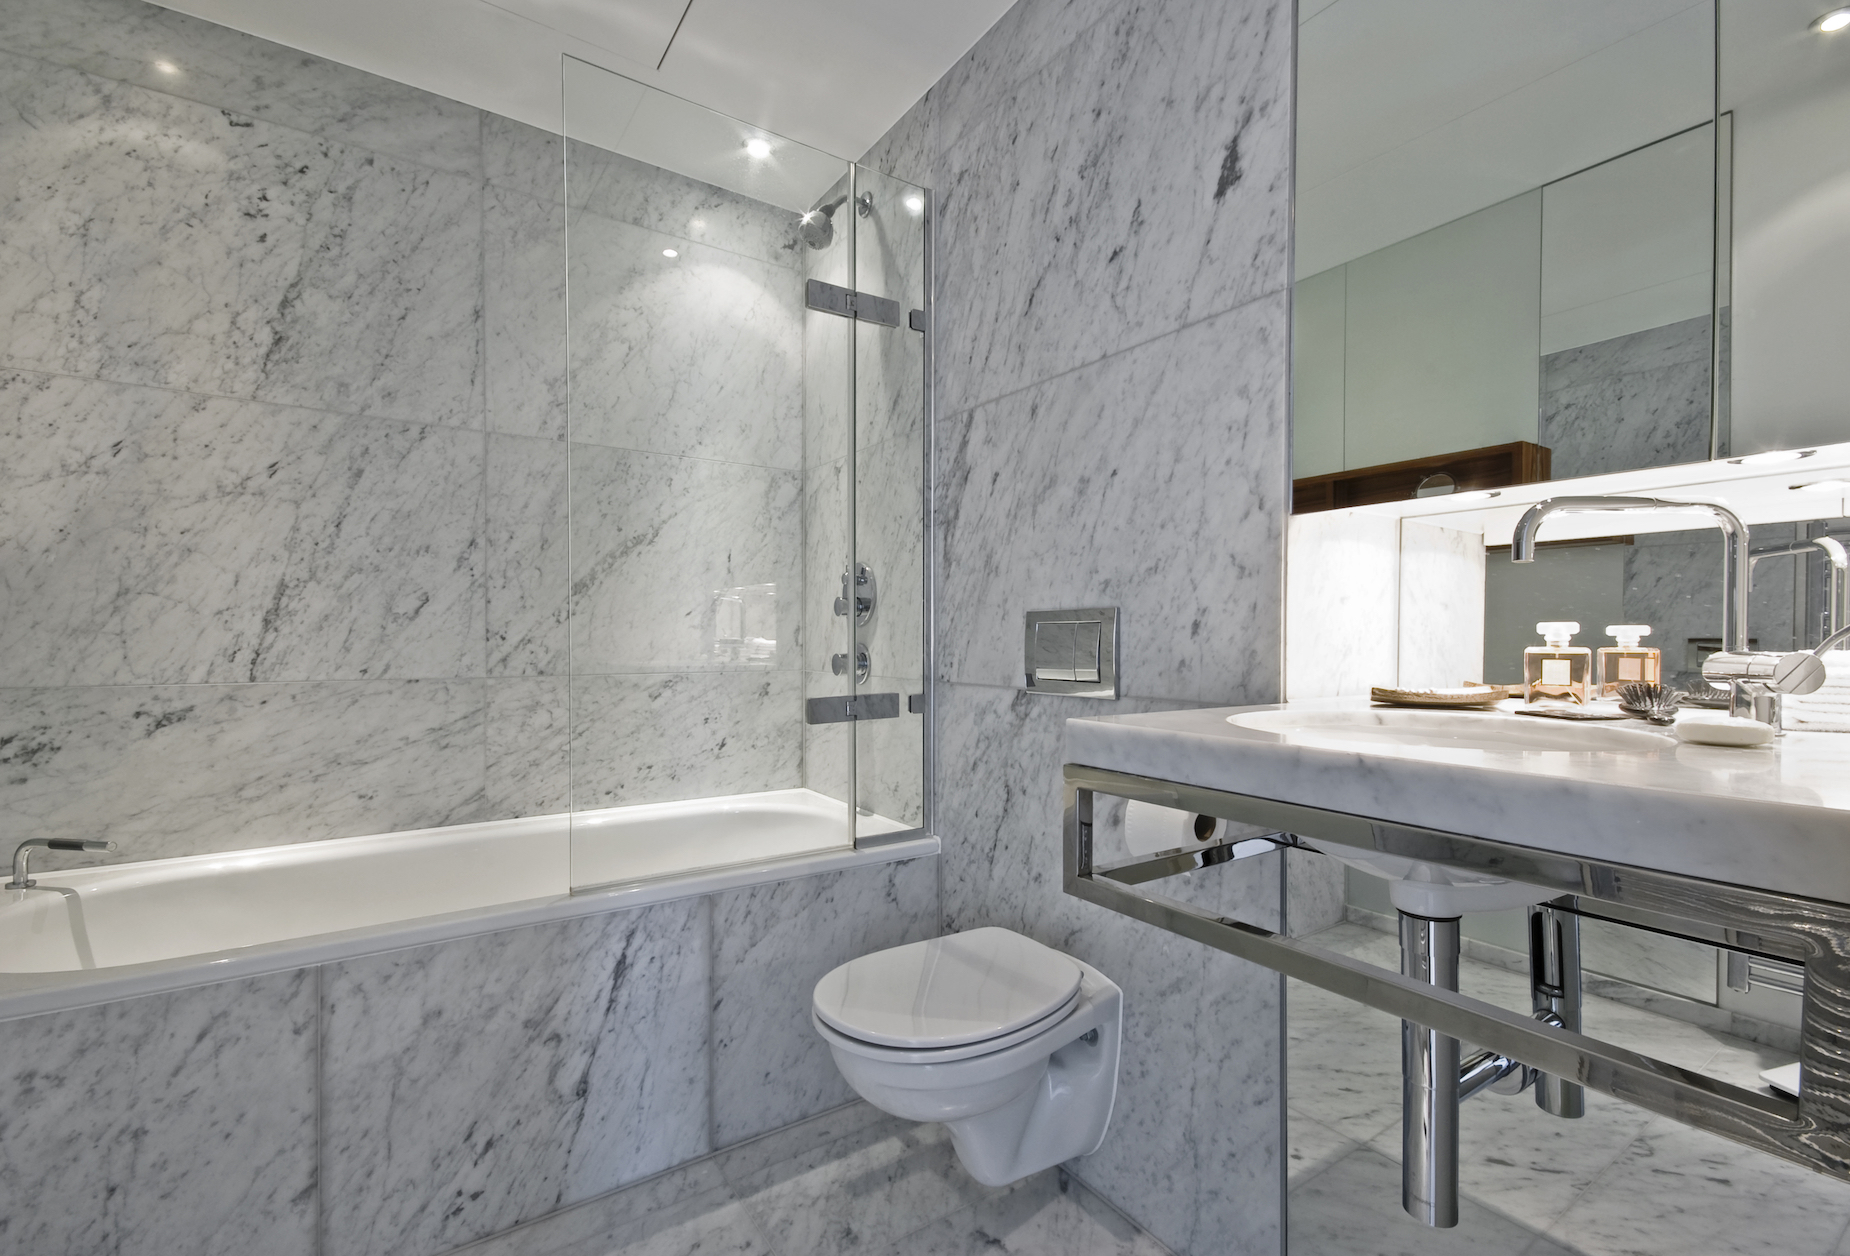 luxury en-suite bathroom design